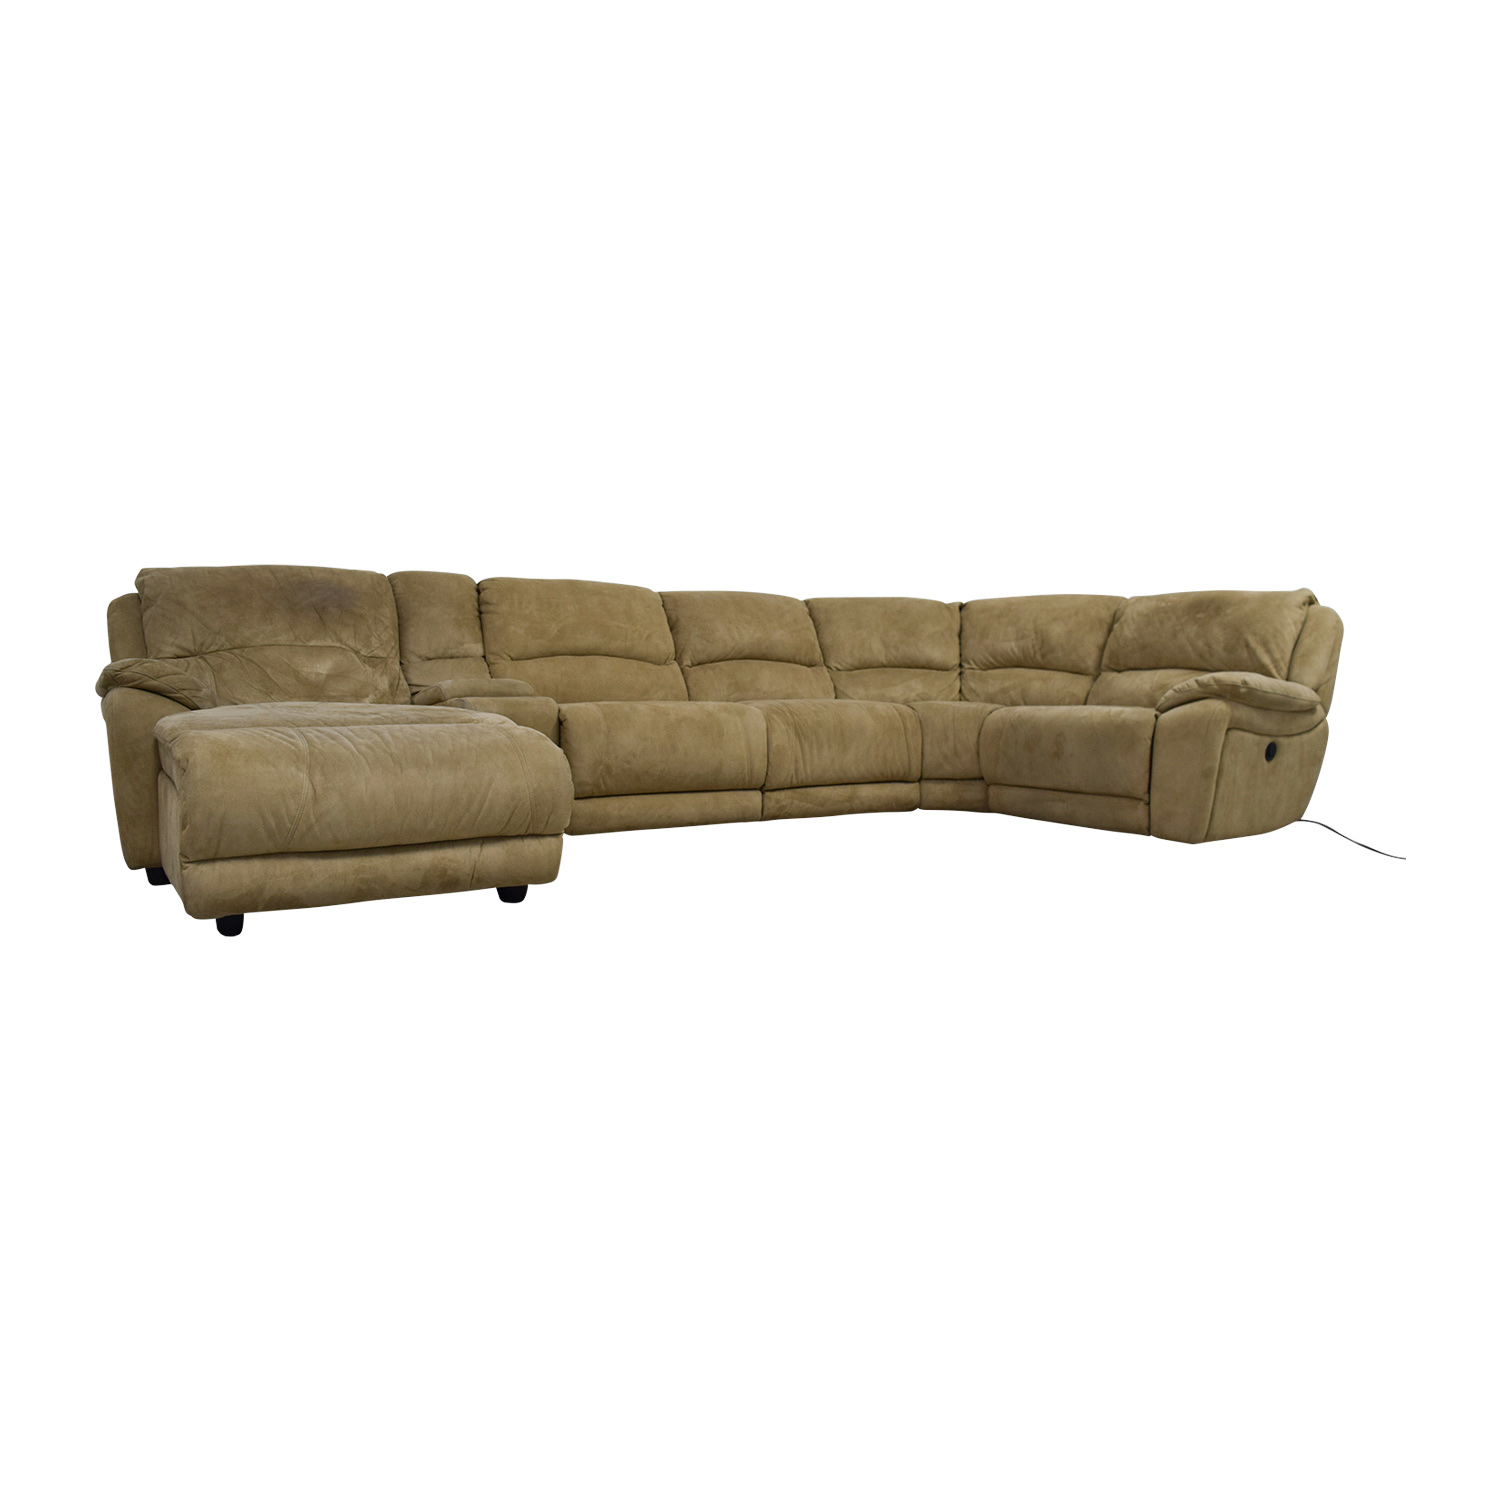 Awesome 68 Off Raymour Flanigan Raymour Flanigan Cindy Crawford Mackenzie Microfiber Power Reclining Sectional Sofas Unemploymentrelief Wooden Chair Designs For Living Room Unemploymentrelieforg